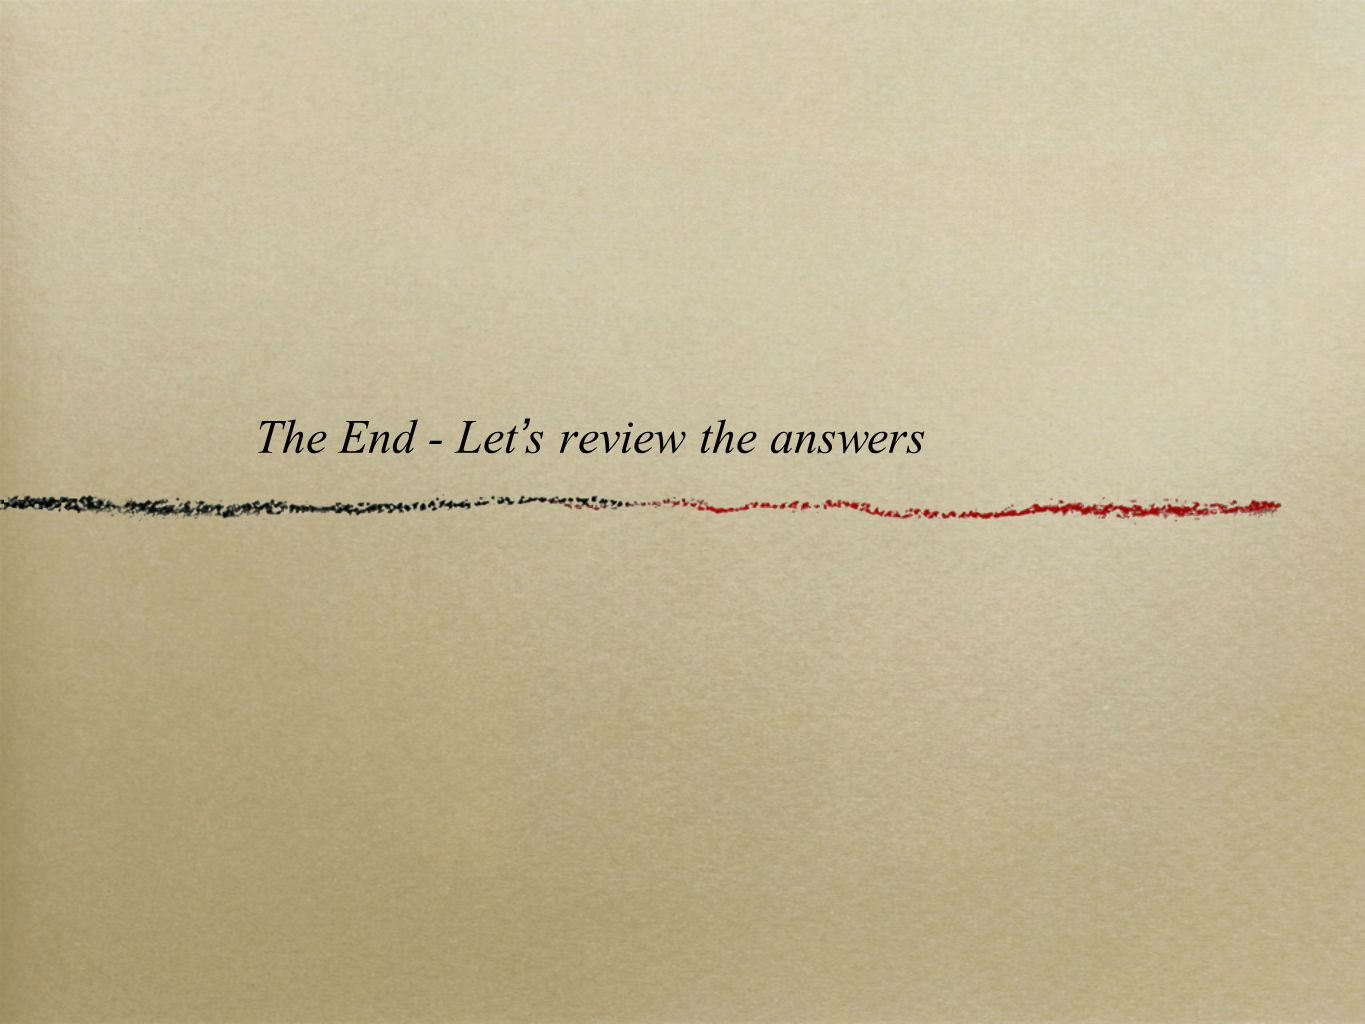 The End - Let's review the answers